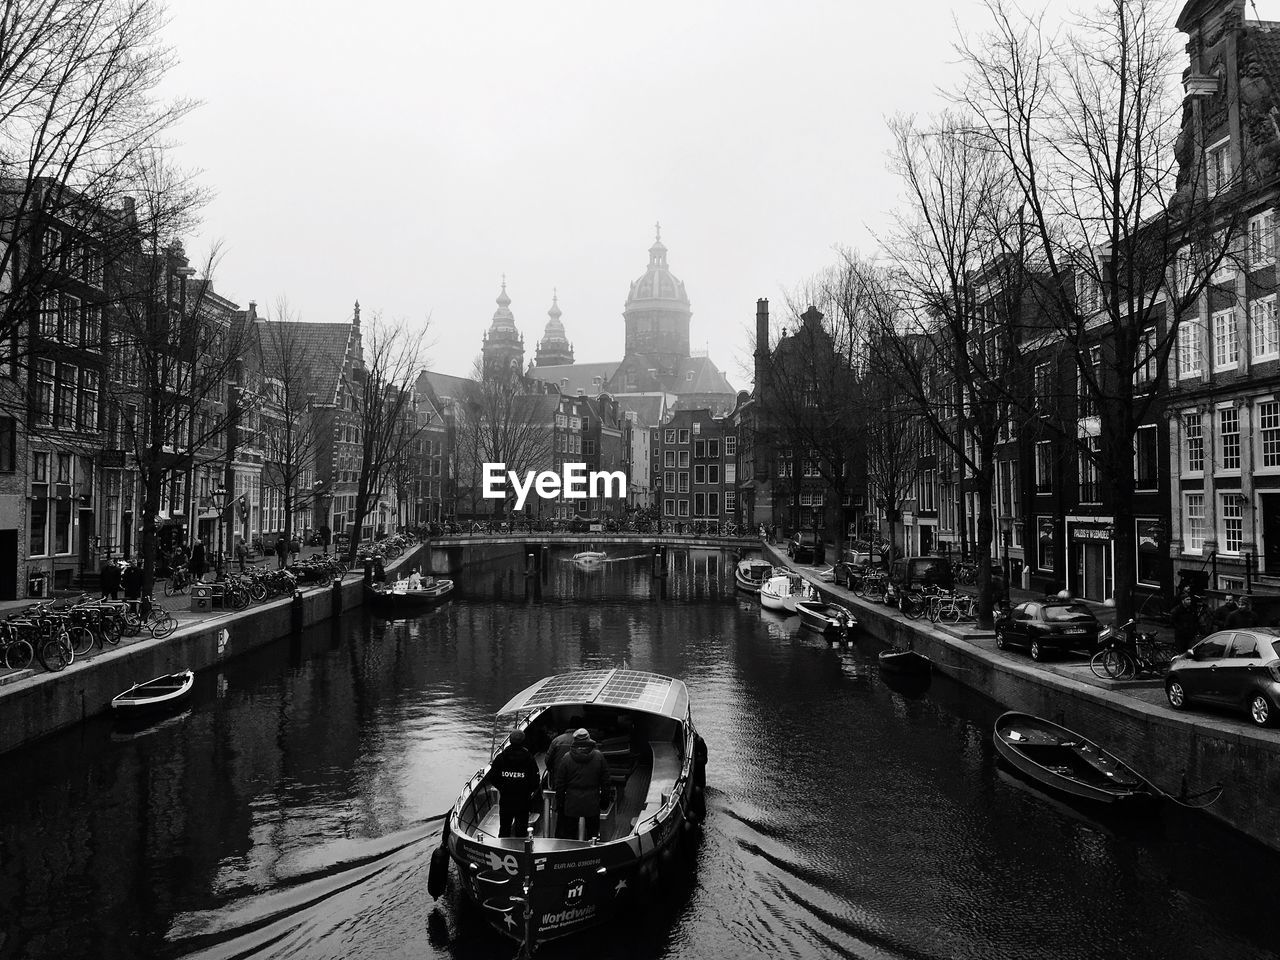 Boat moving in canal amidst buildings against clear sky